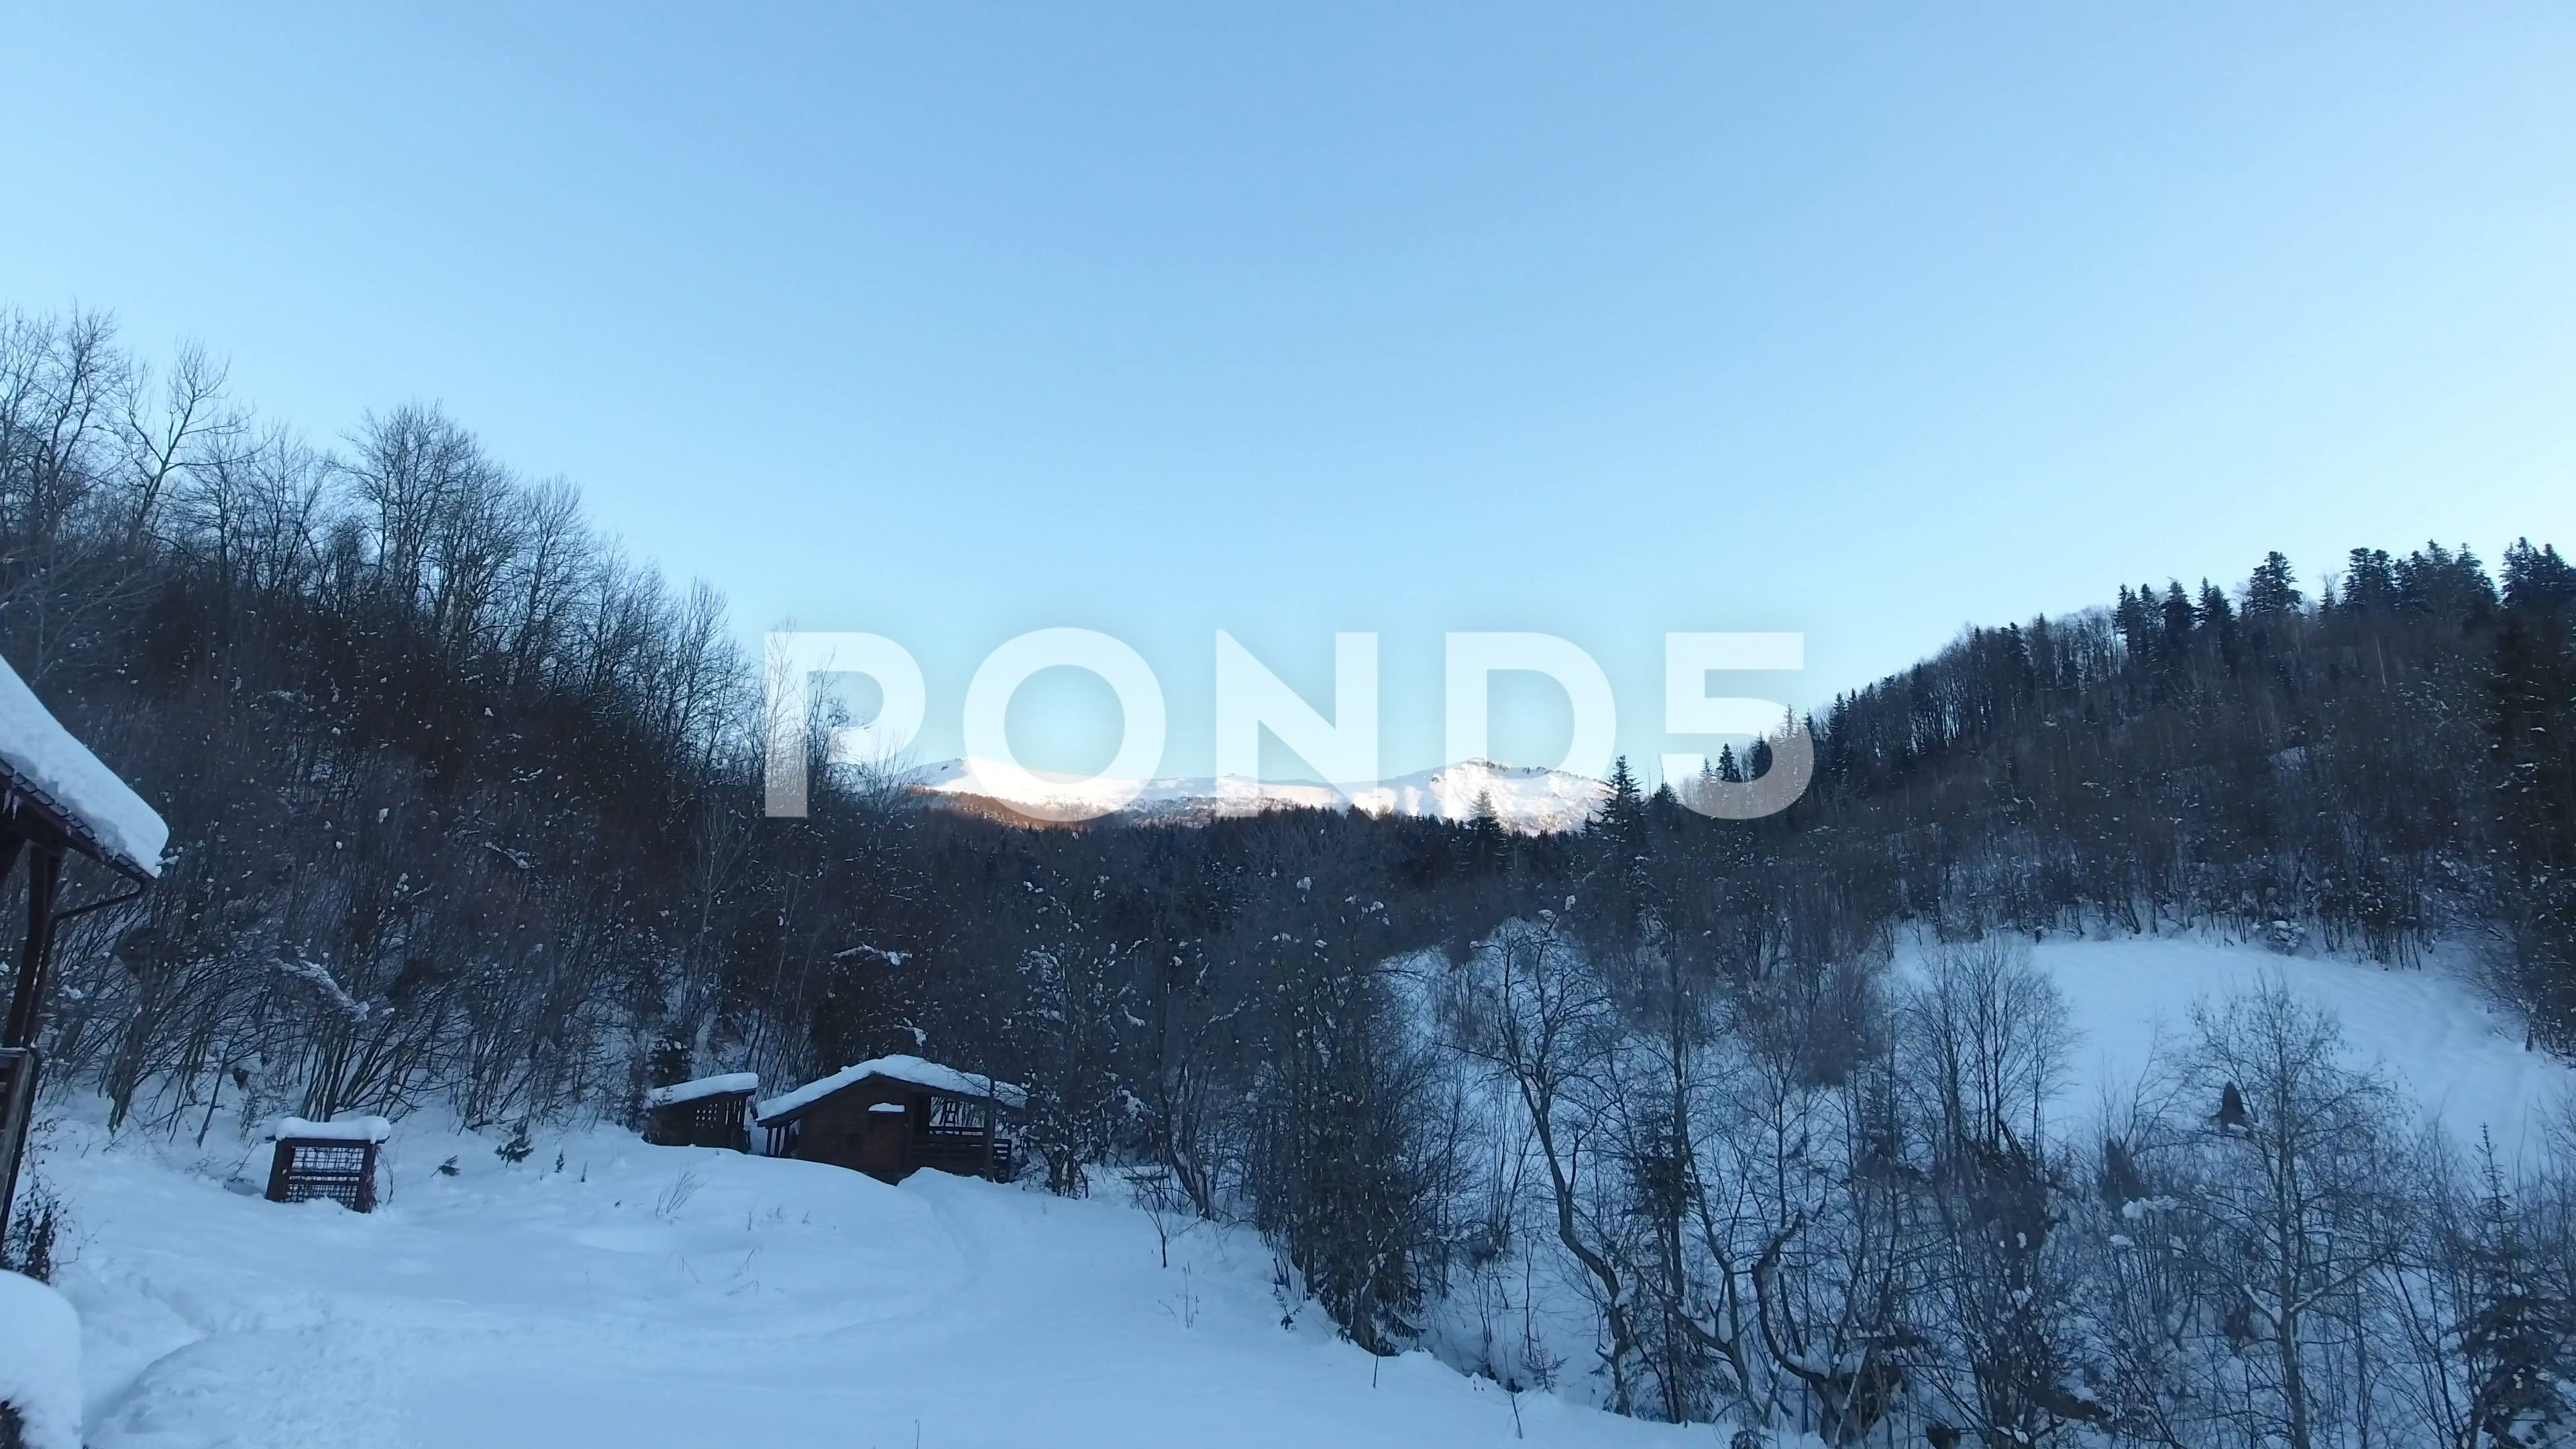 Mountain Pikuy Ukraine Winter Snow Landscape Aerial View Fly Over Sunset Dusk Stock Footage Winter Snow Landscape Mountain Aerial View Winter Snow Aerial